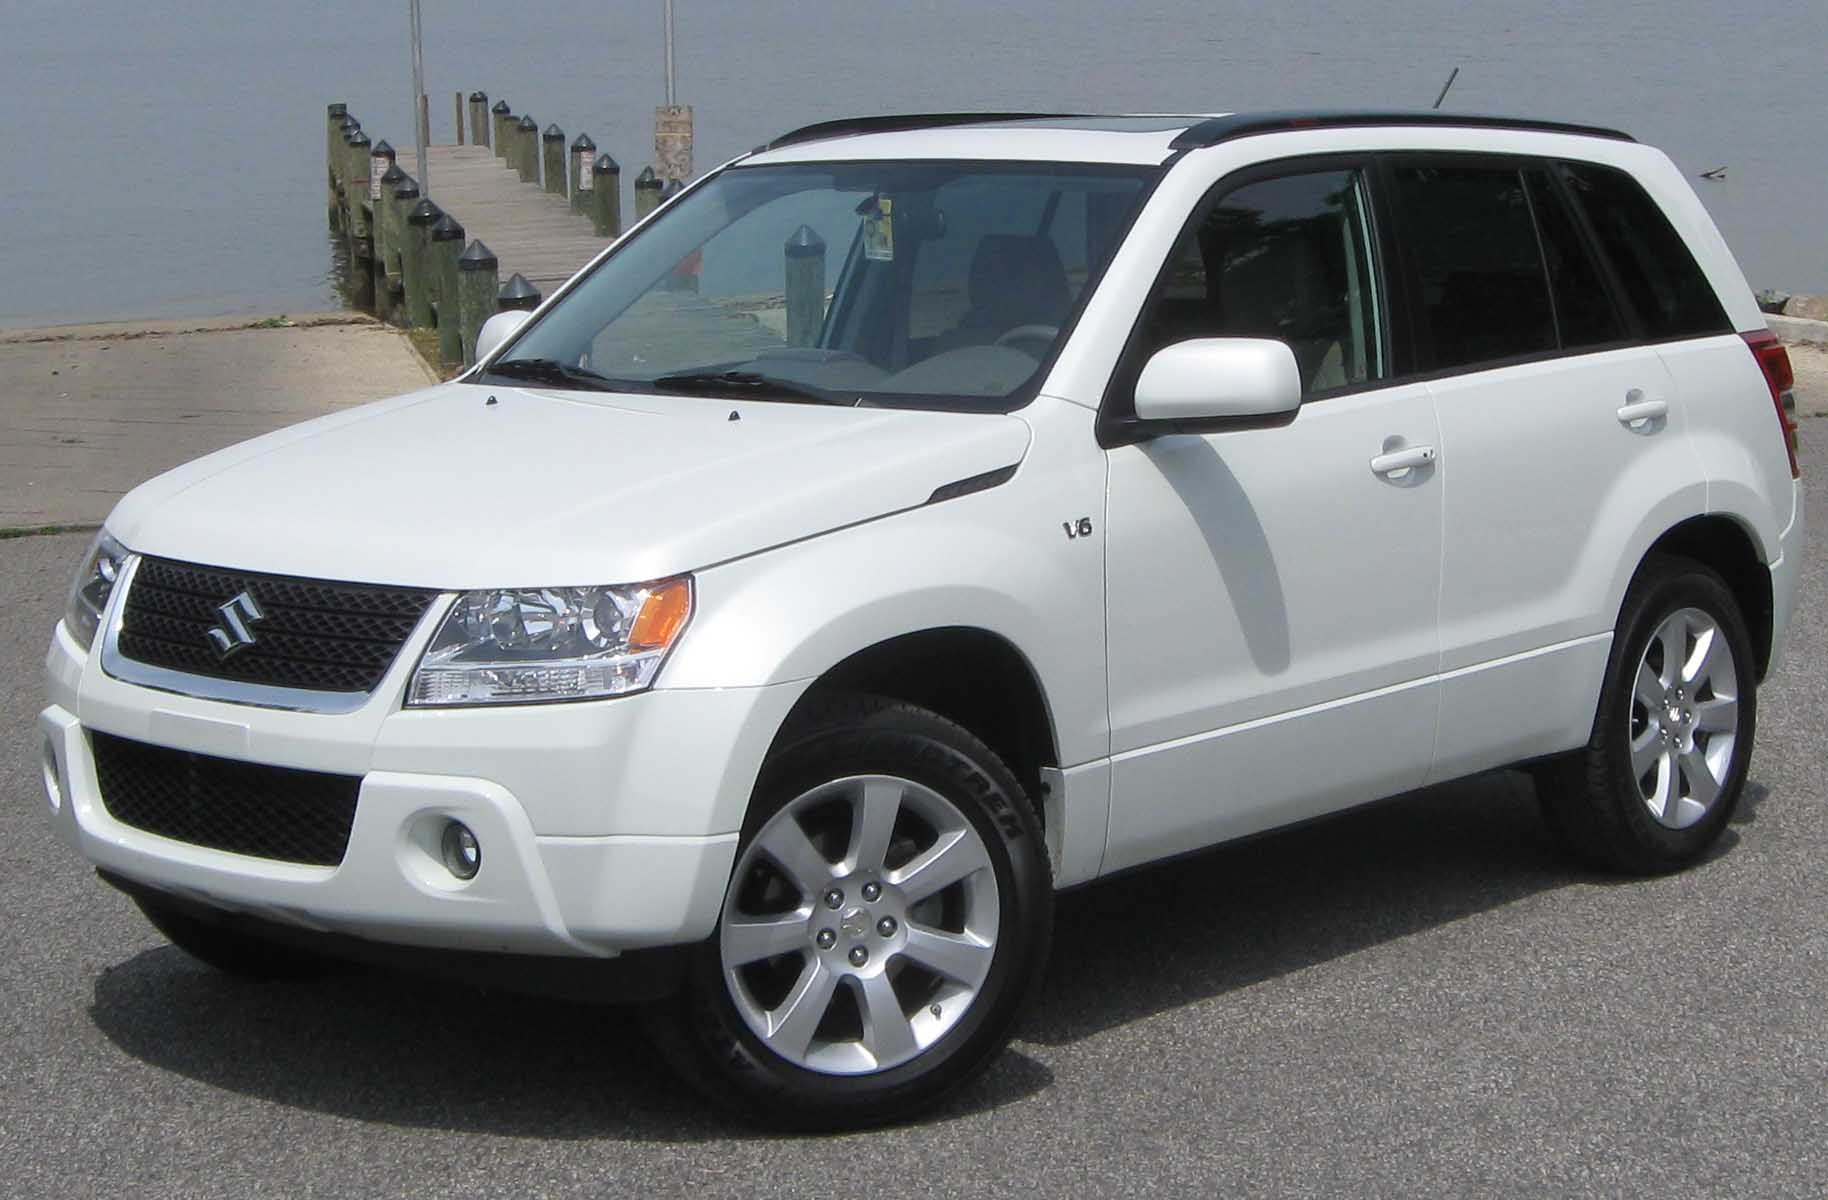 2010 Suzuki Grand Vitara Limited 2